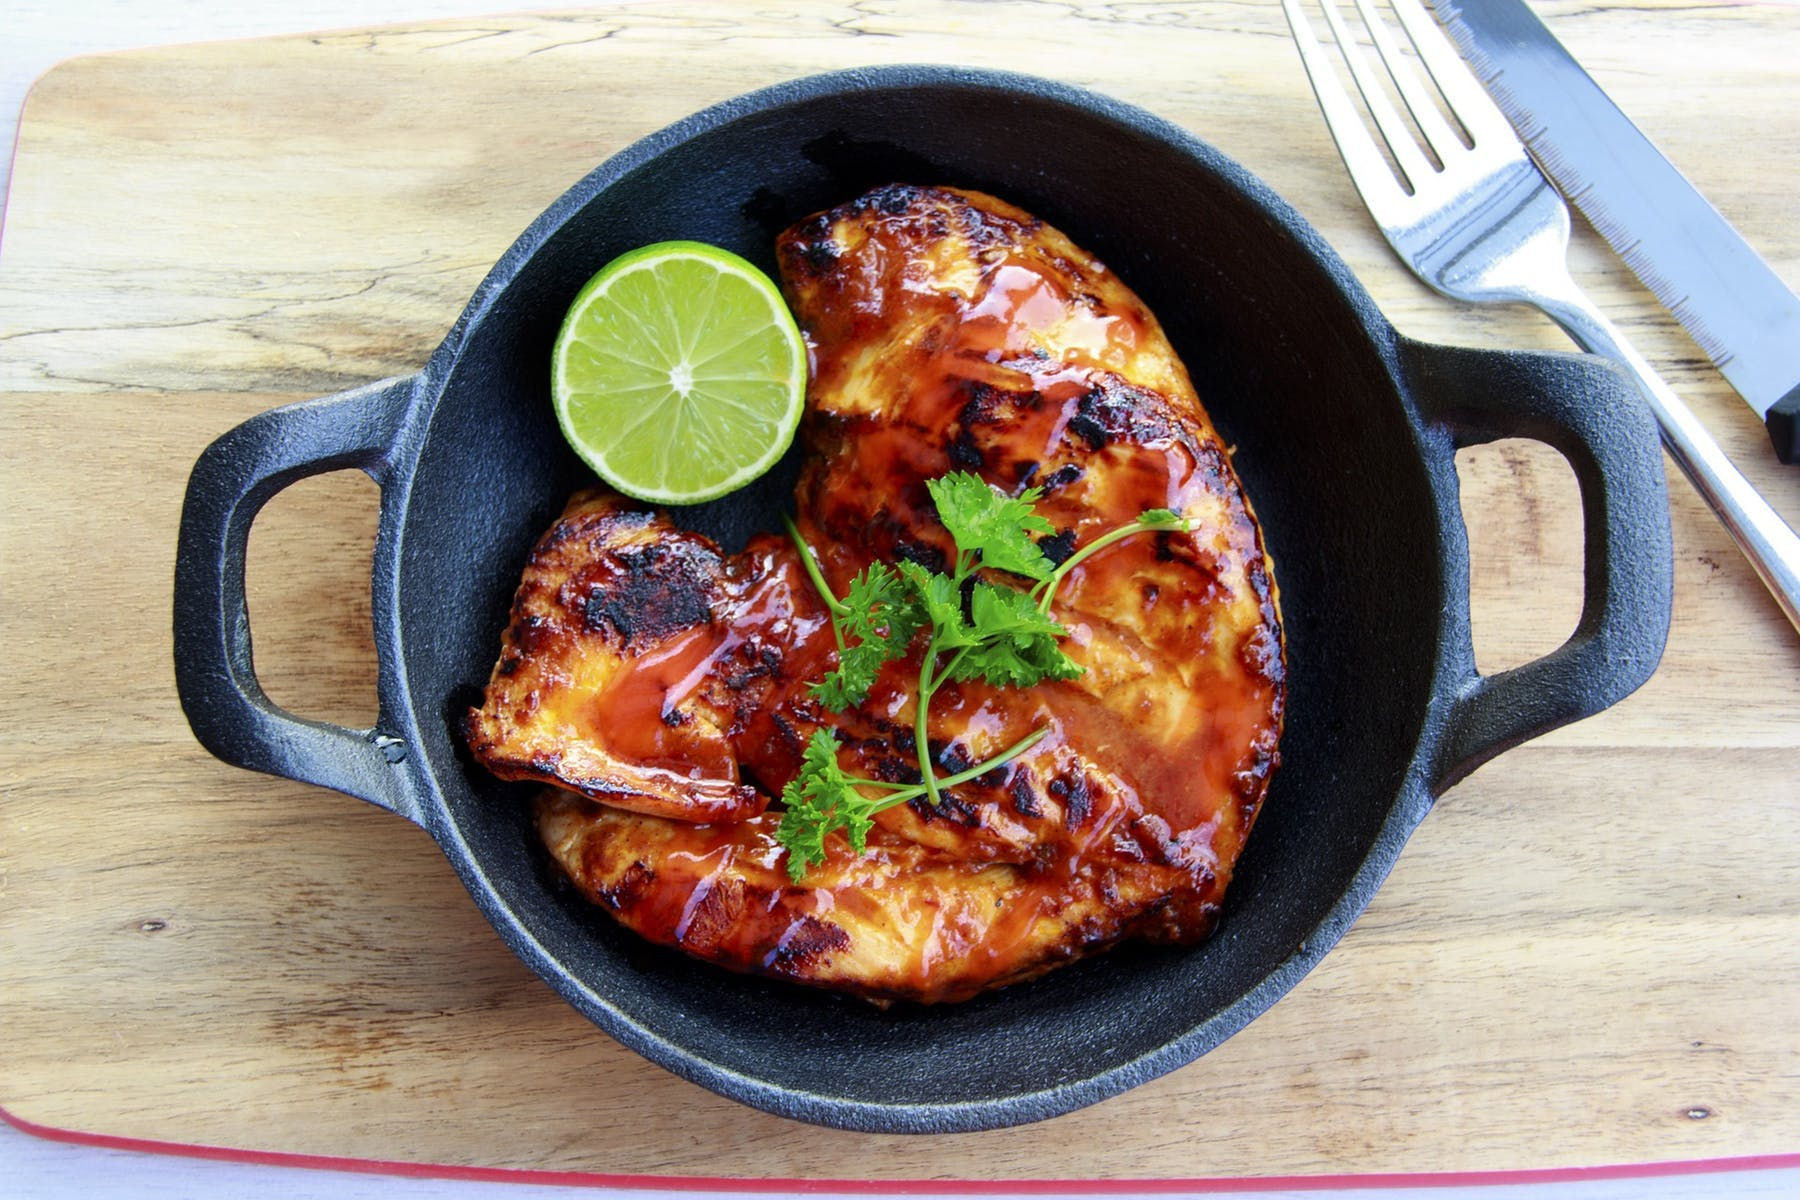 chicken on a frying pan sitting on top of a wooden table